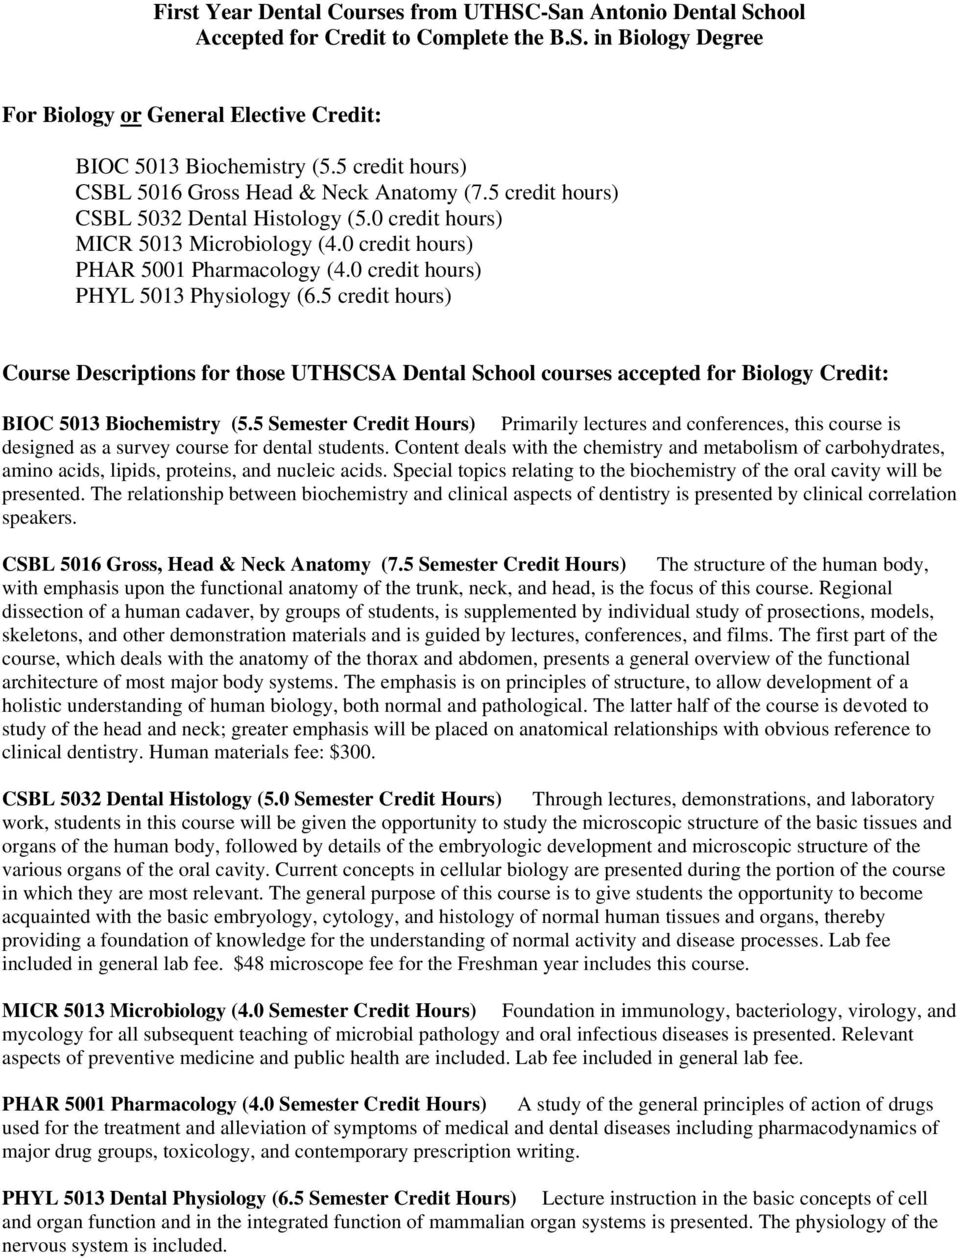 0 credit hours) PHYL 5013 Physiology (6.5 credit hours) Course Descriptions for those UTHSCSA Dental School courses accepted for Biology Credit: BIOC 5013 Biochemistry (5.